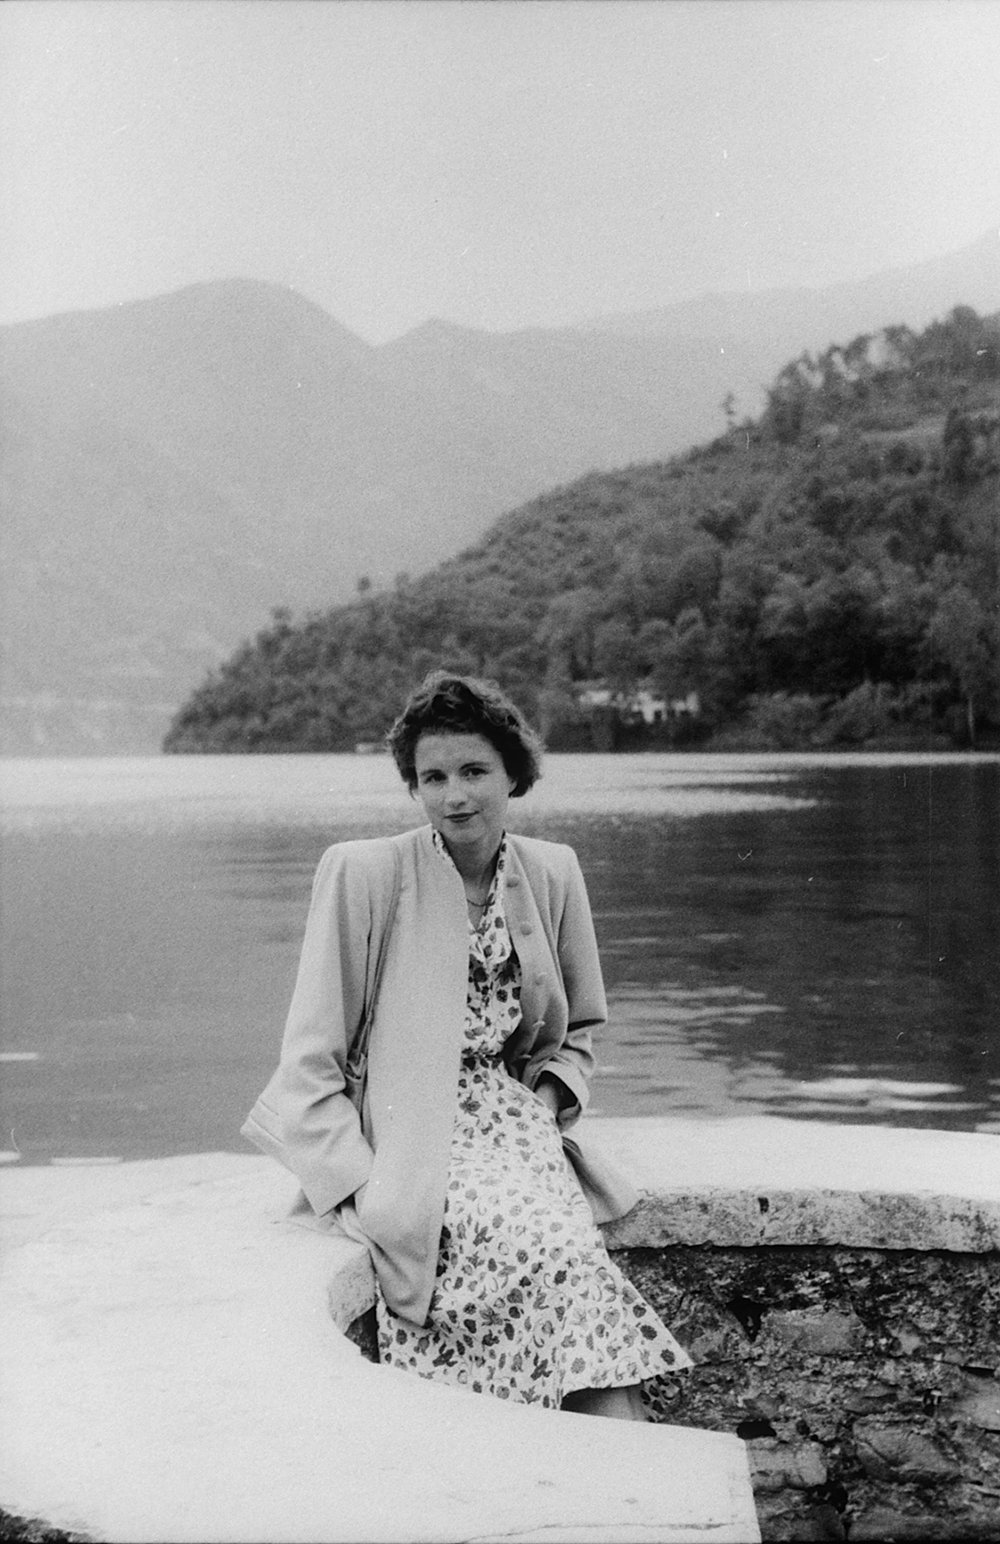 Woman beside a lake